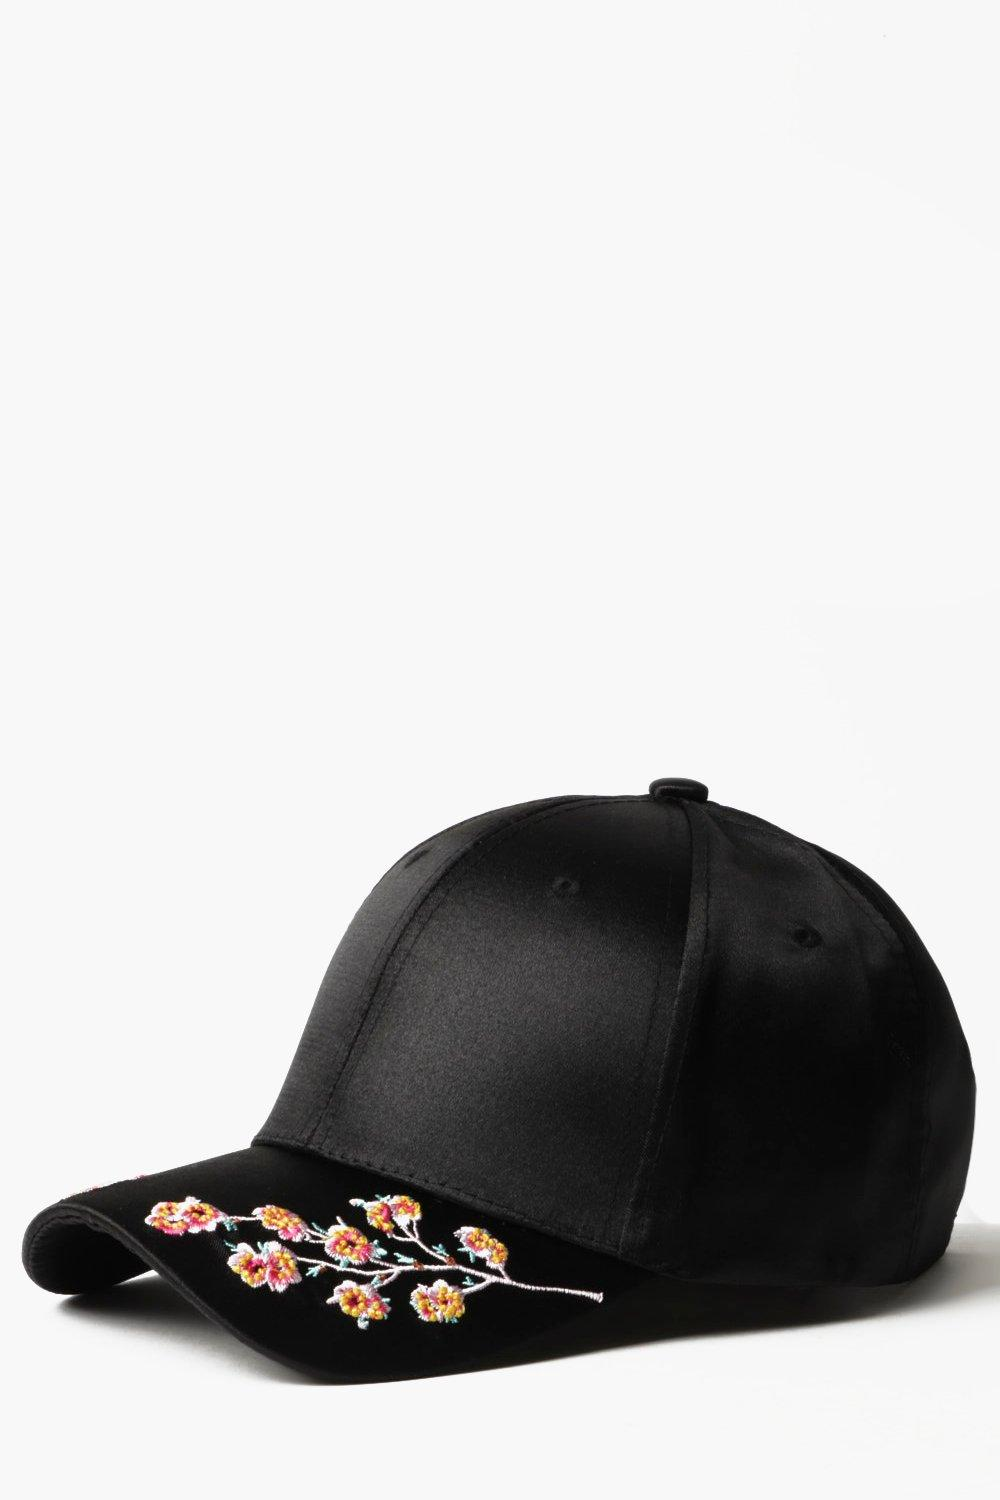 Floral Embroidered Cap - black - Black Floral Embr